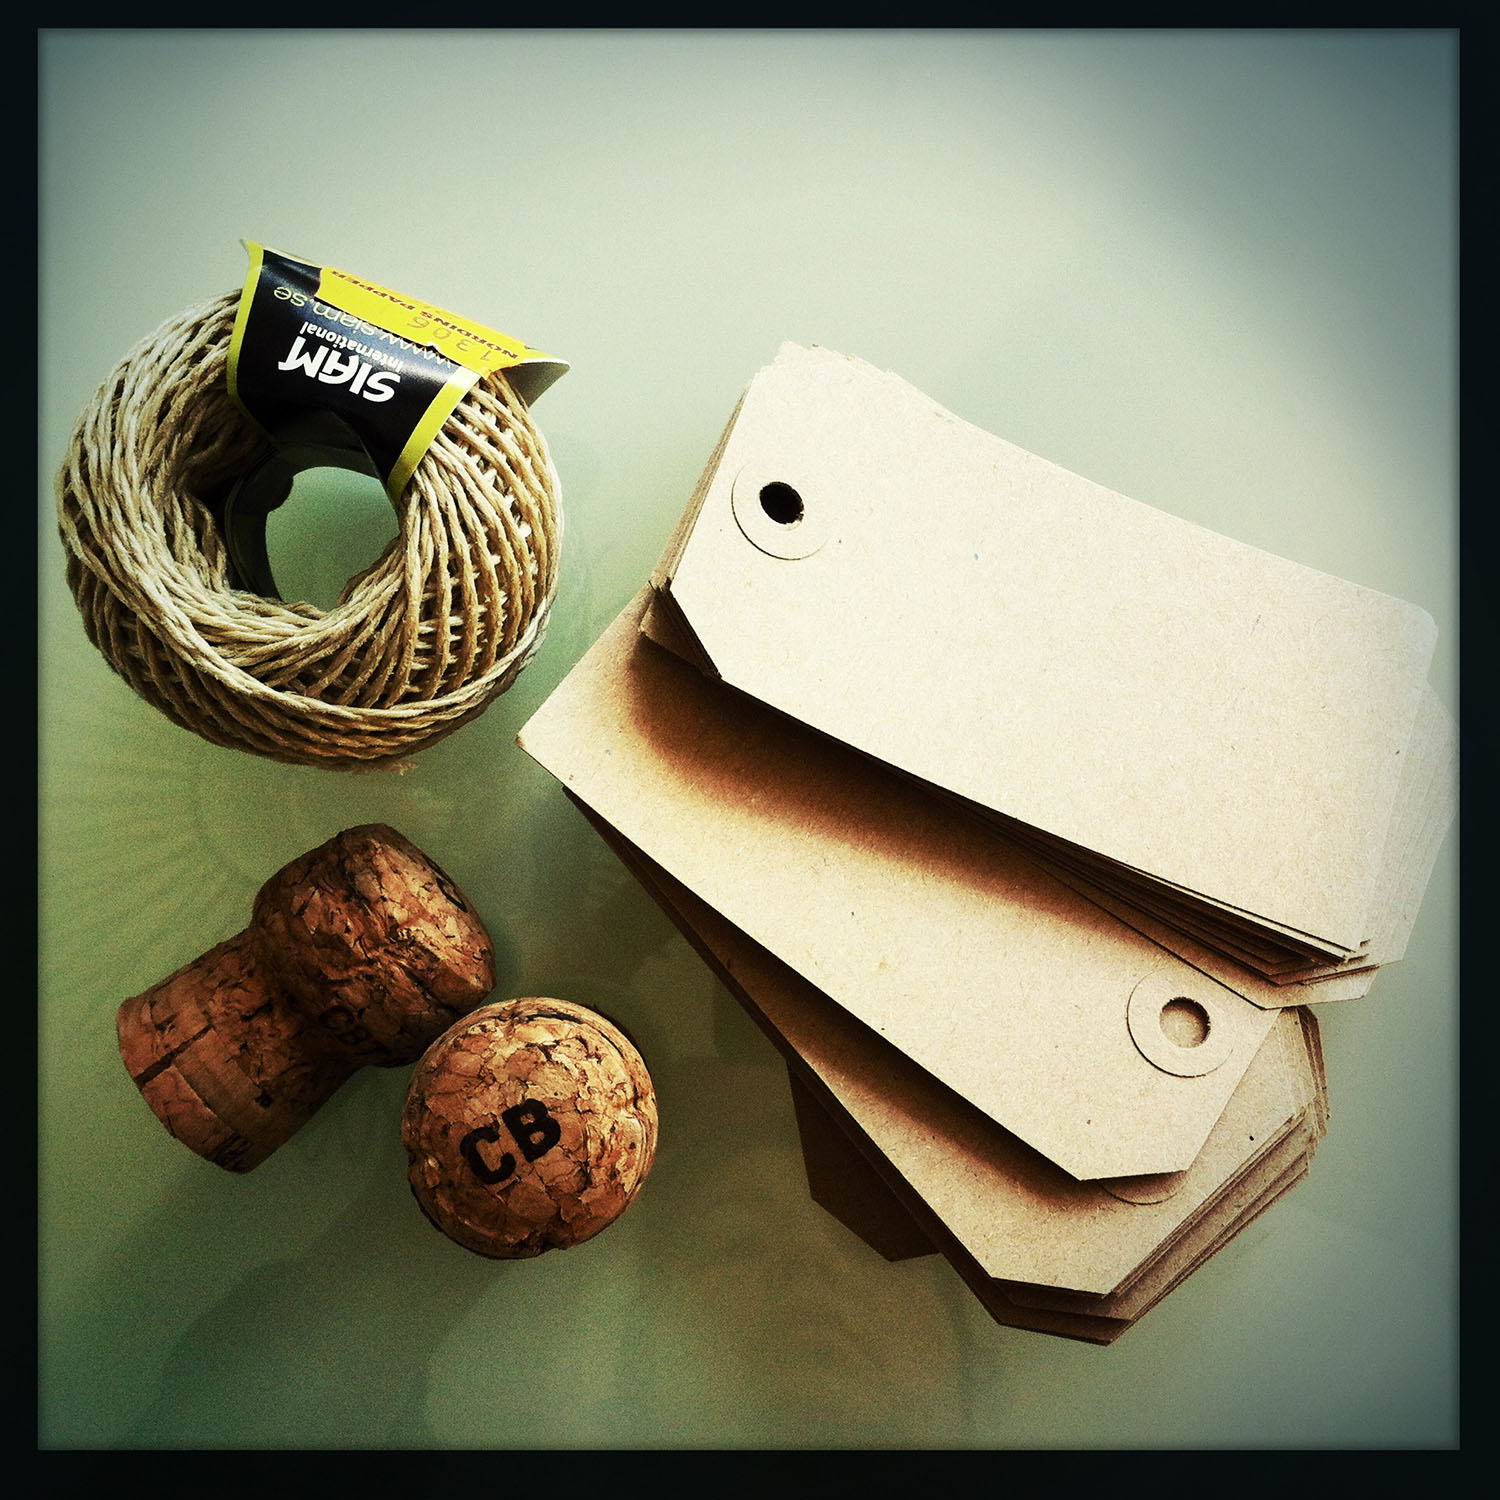 iPhone photo: branding supplies